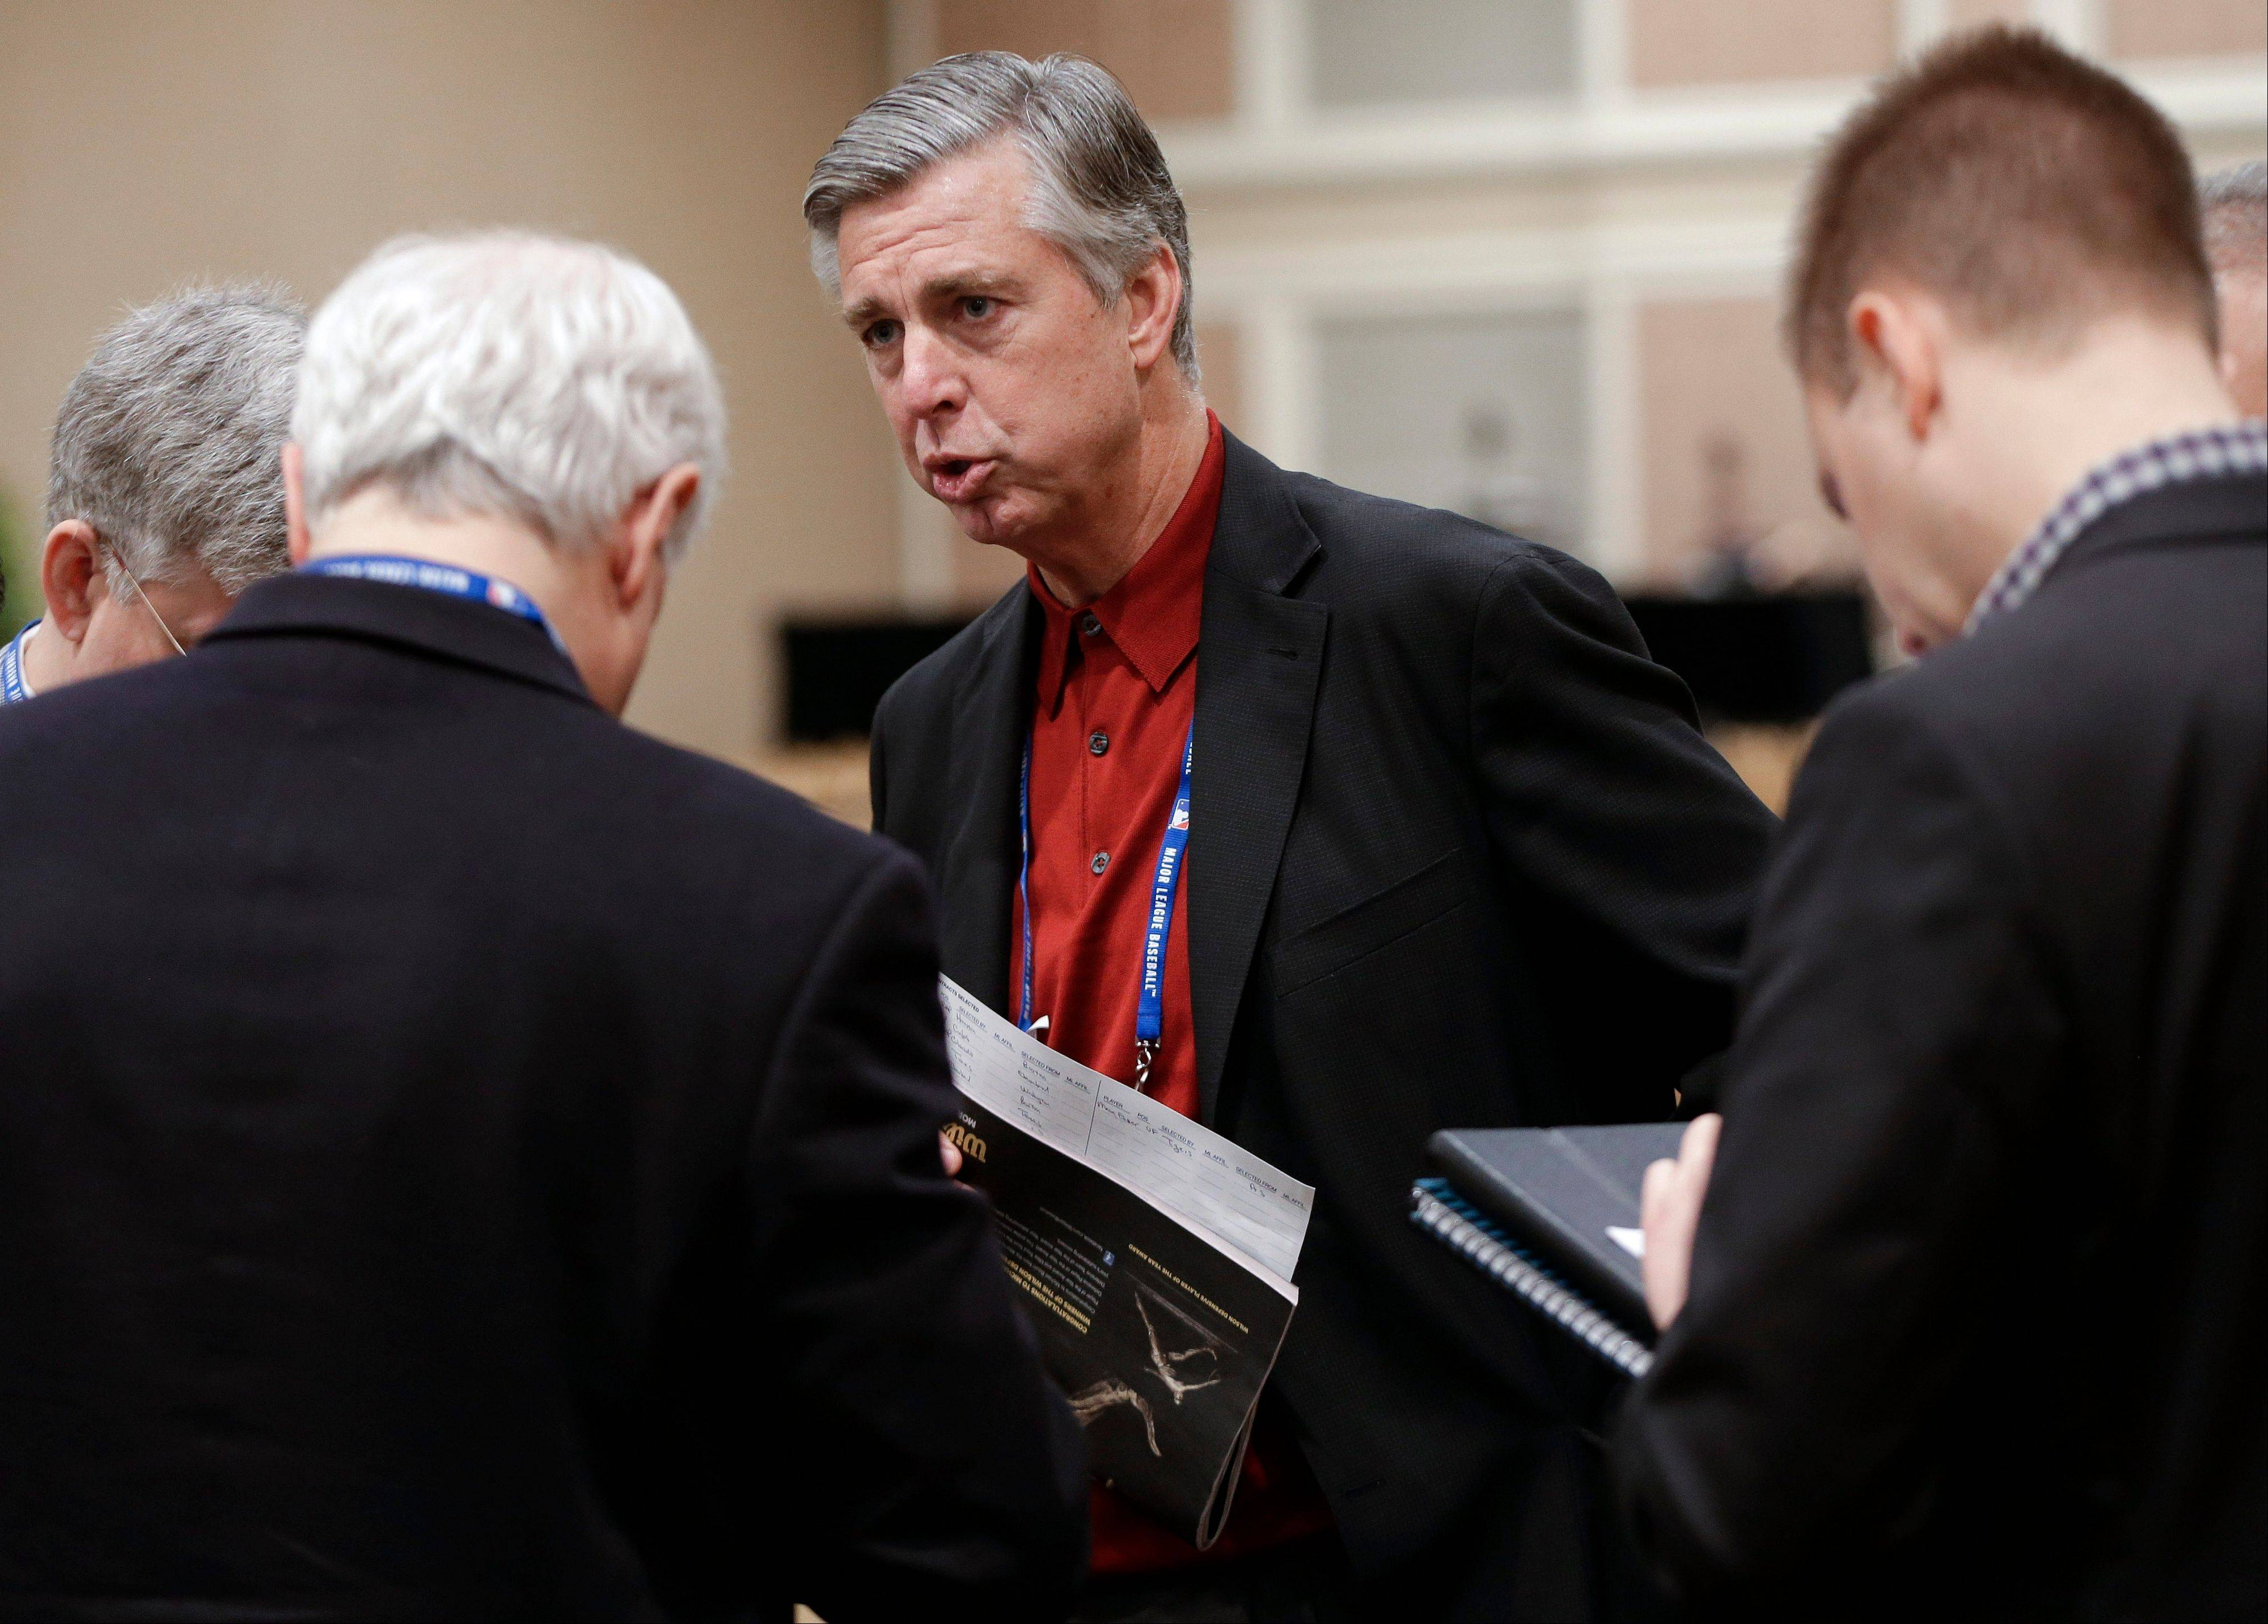 Detroit Tigers general manager David Dombrowski, center, talks with reporters Thursday following the Rule 5 draft at the baseball winter meetings in Nashville, Tenn.